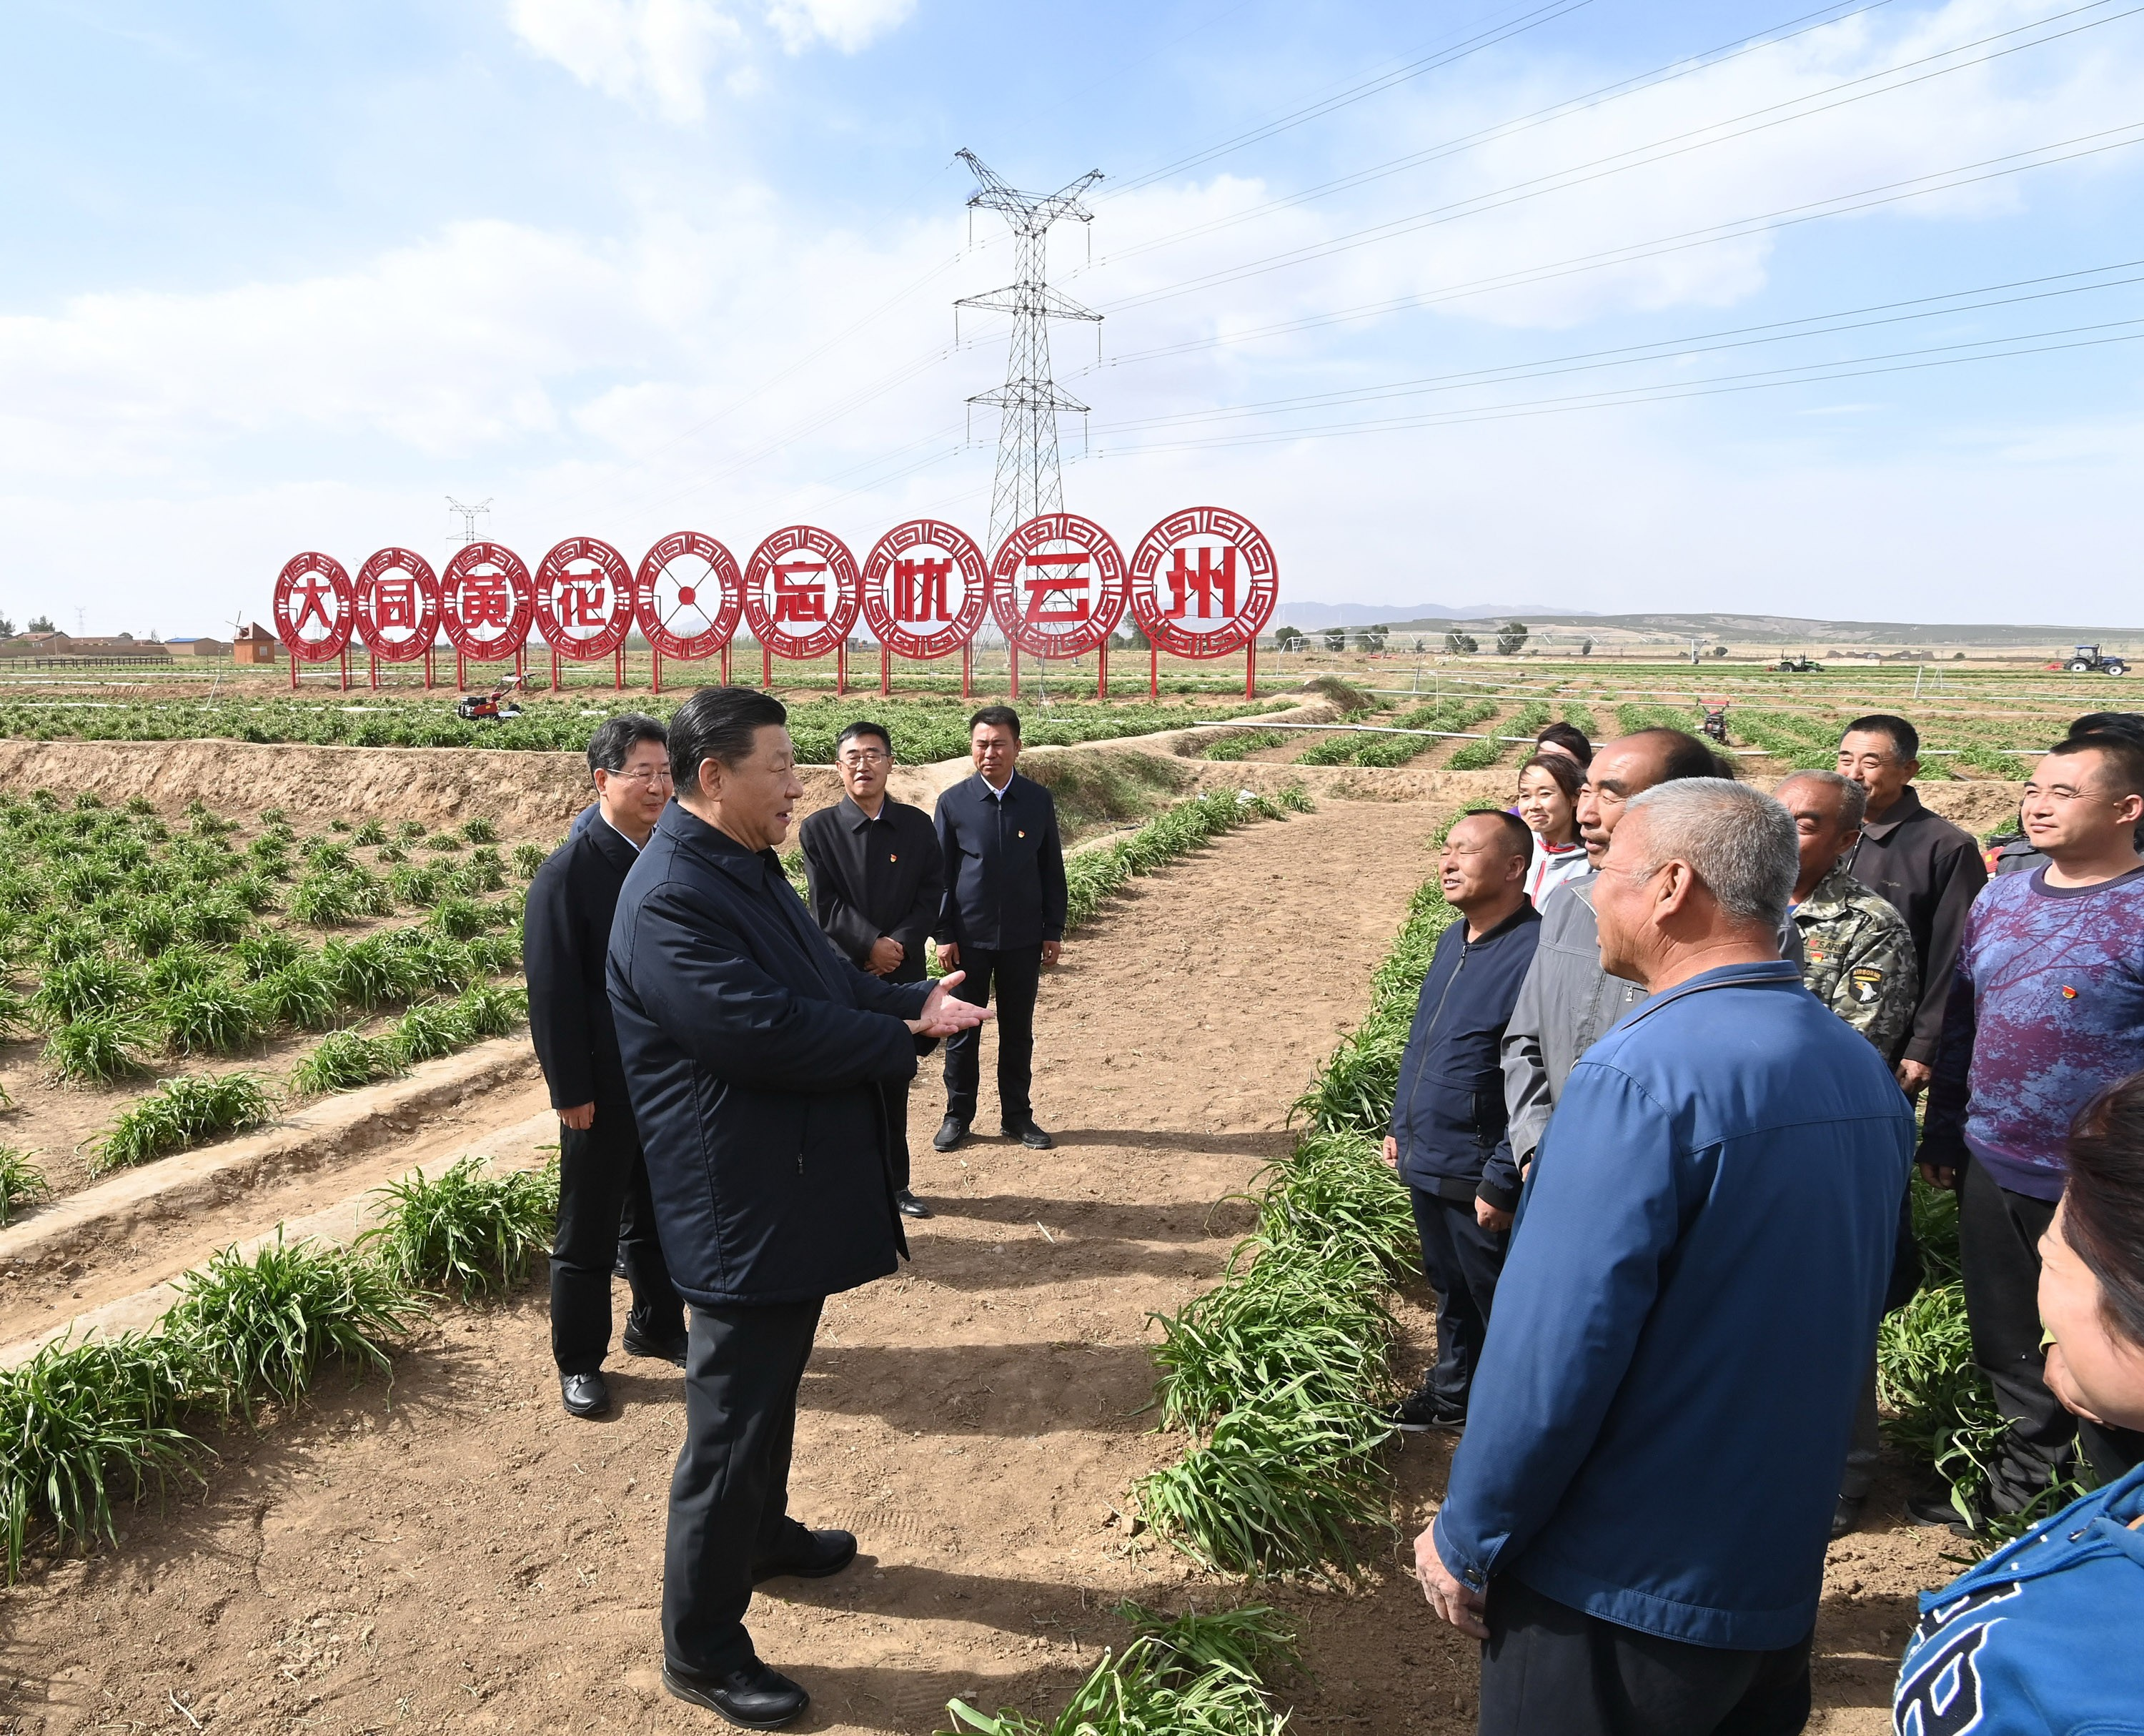 President Xi shows care for poverty-stricken villages